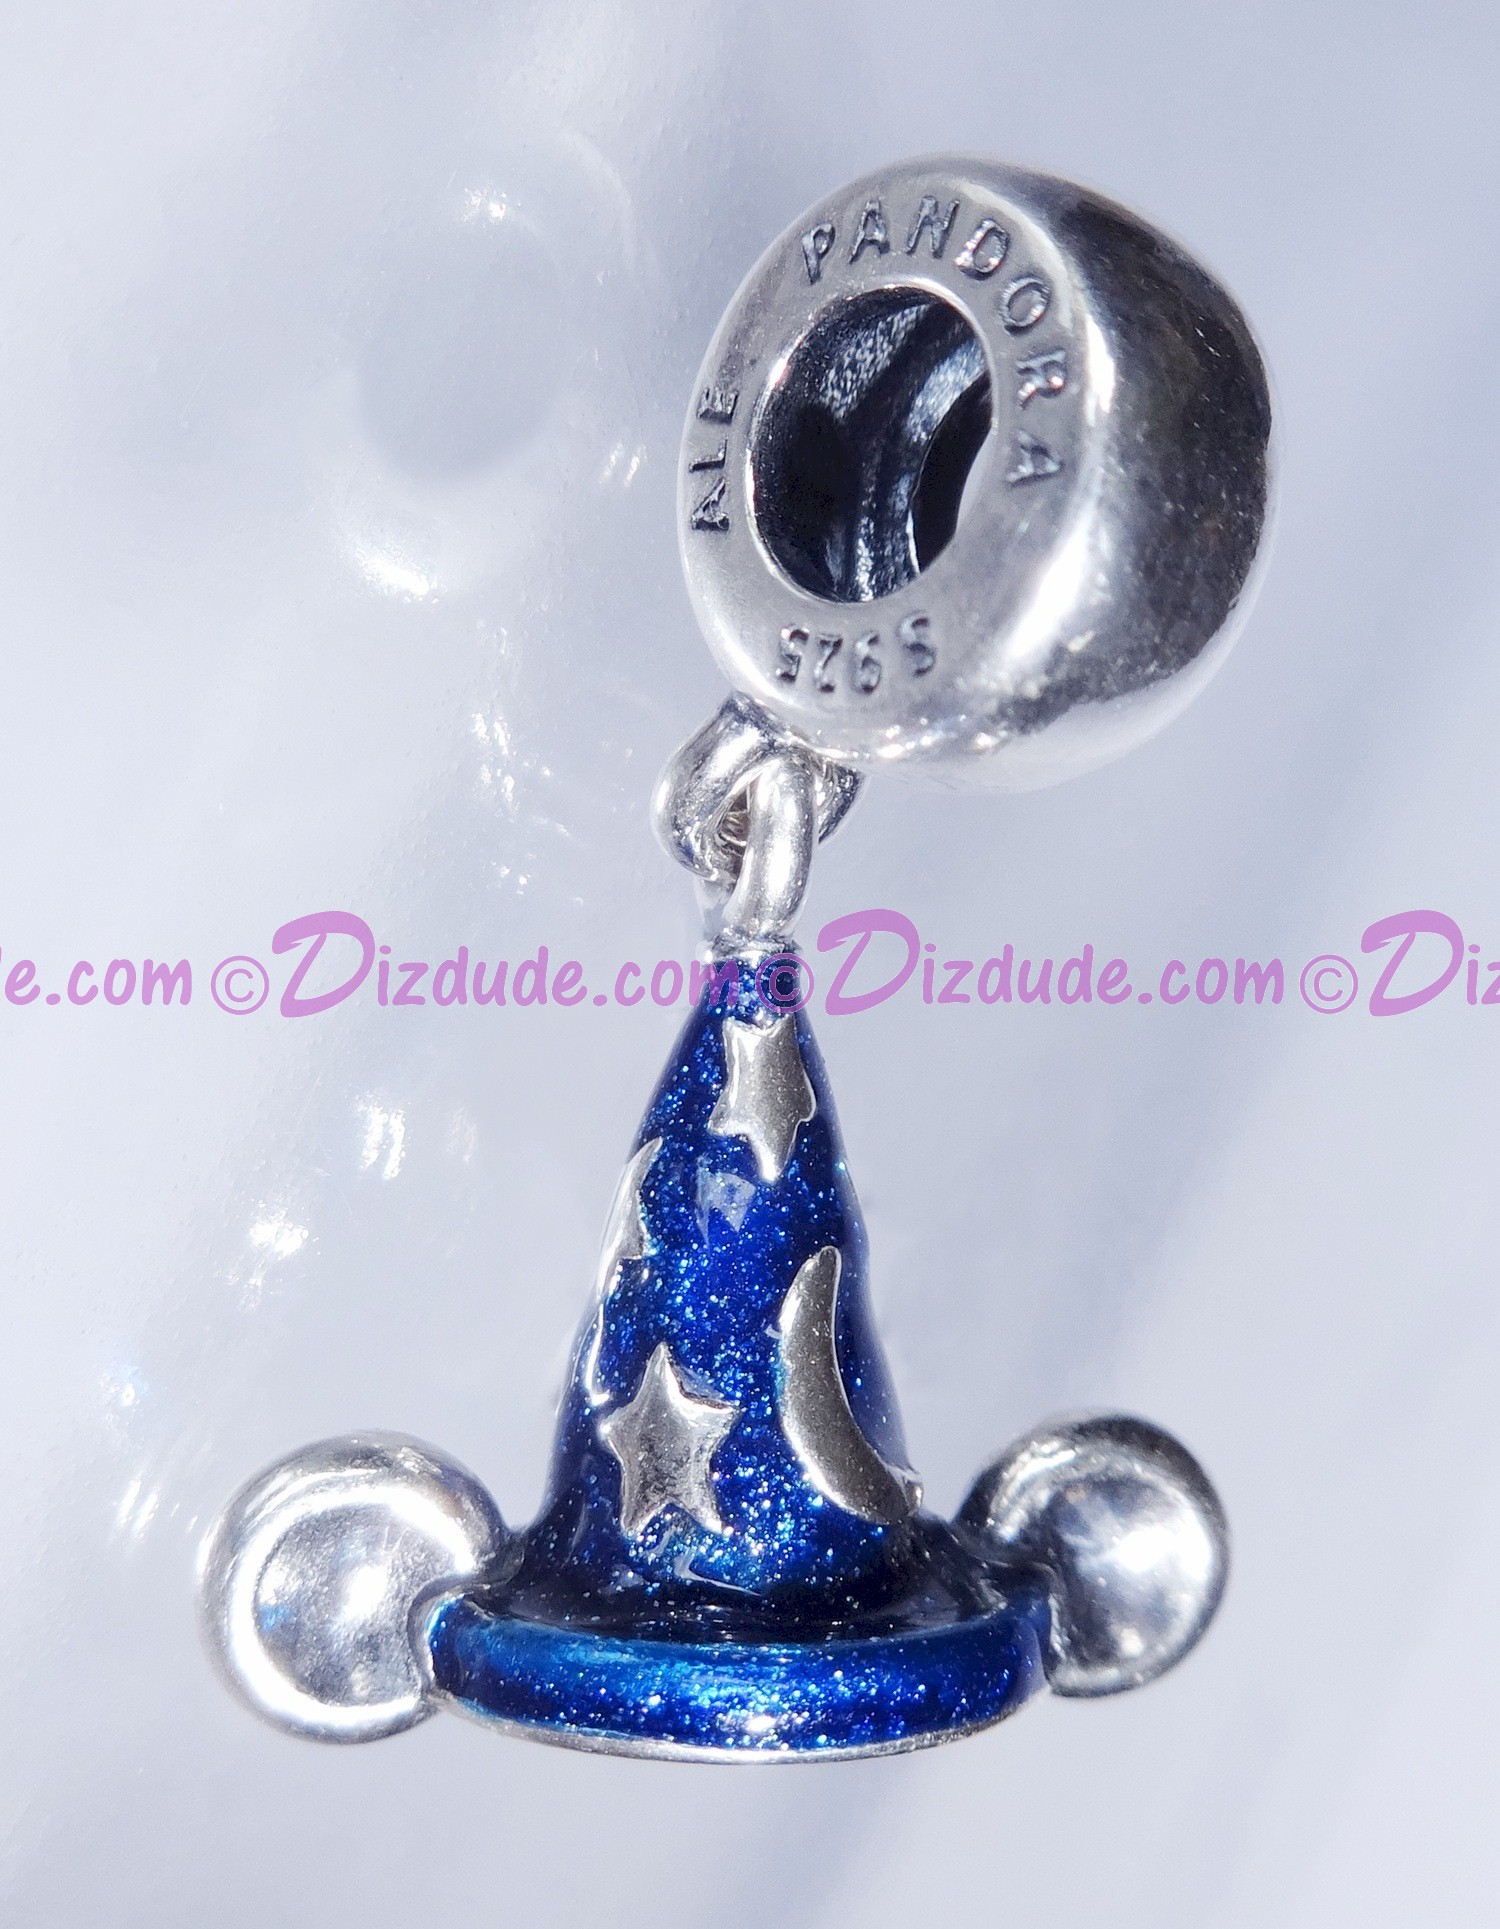 """Disney Pandora """"Mickey's Sorcerers Hat"""" Sterling Silver Charm - Disney World Parks Exclusive"""